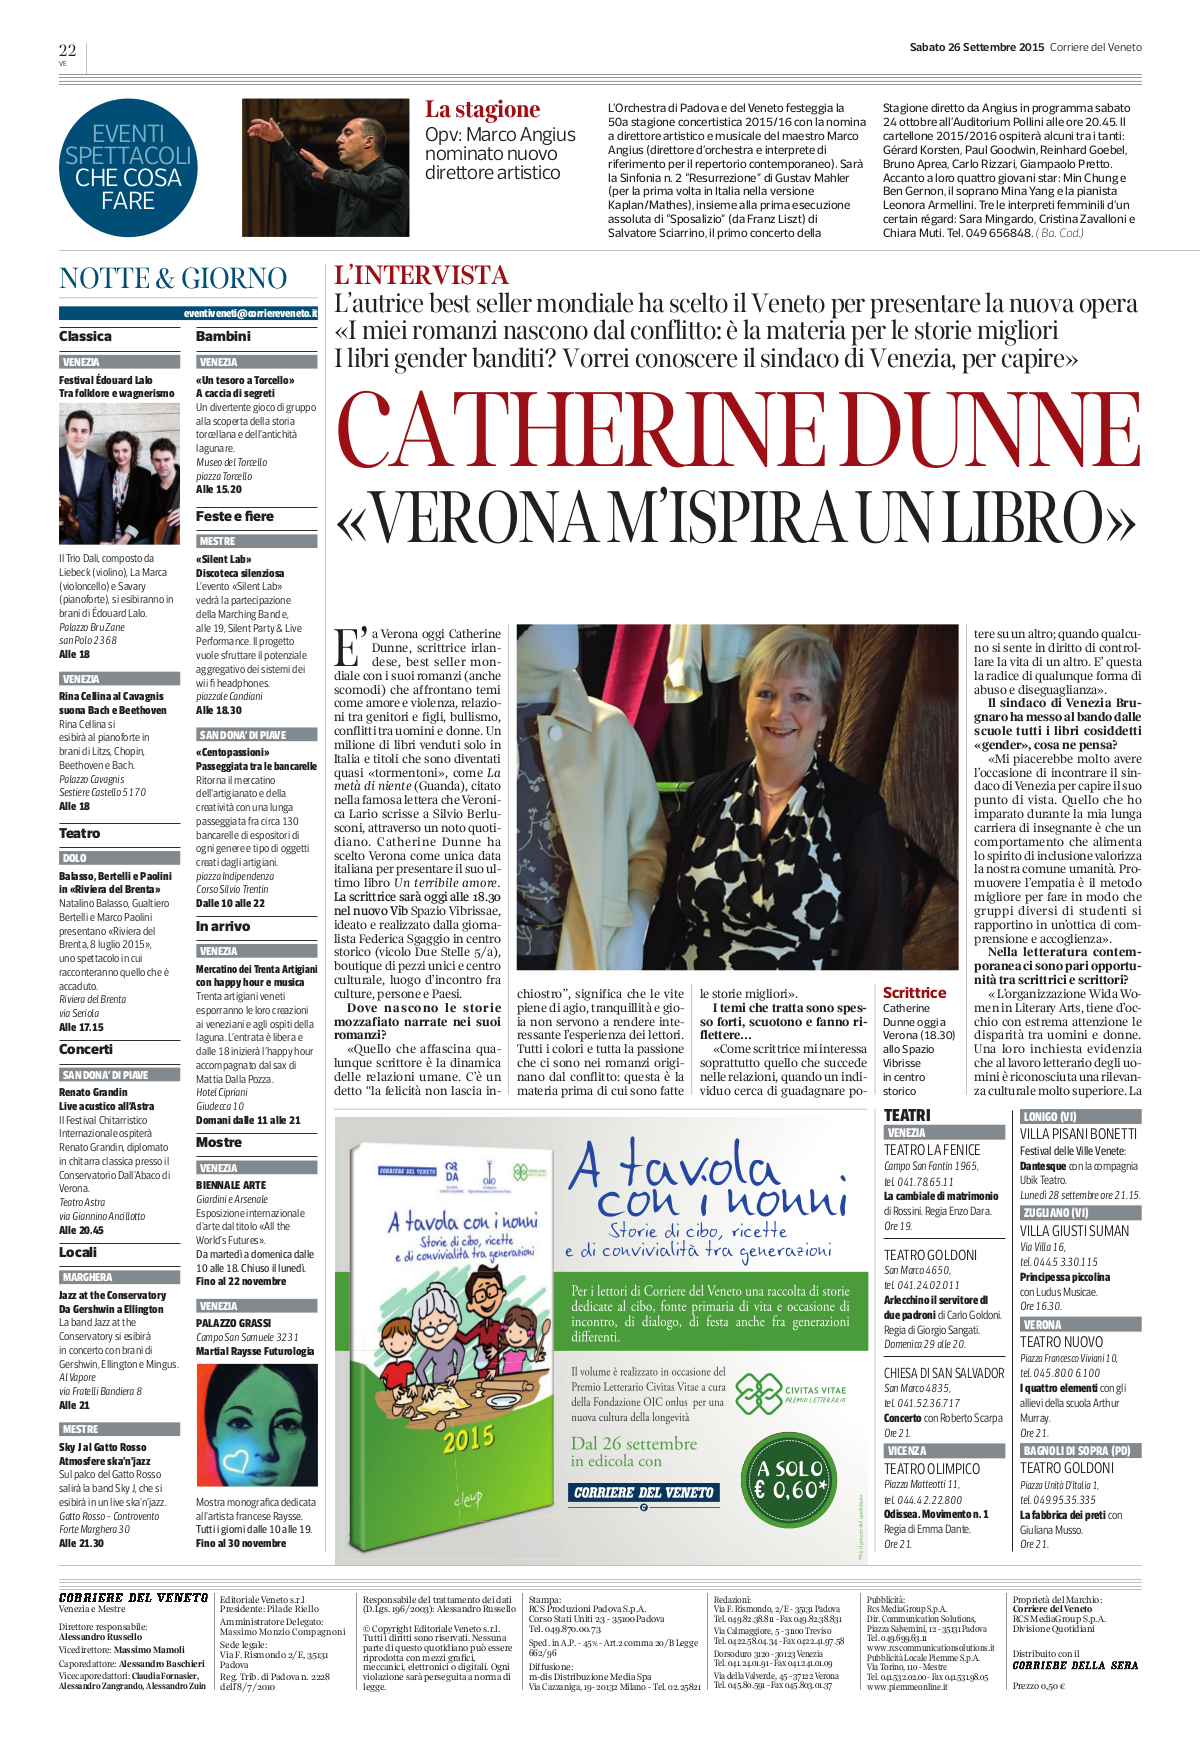 catherine dunne un terribile amore